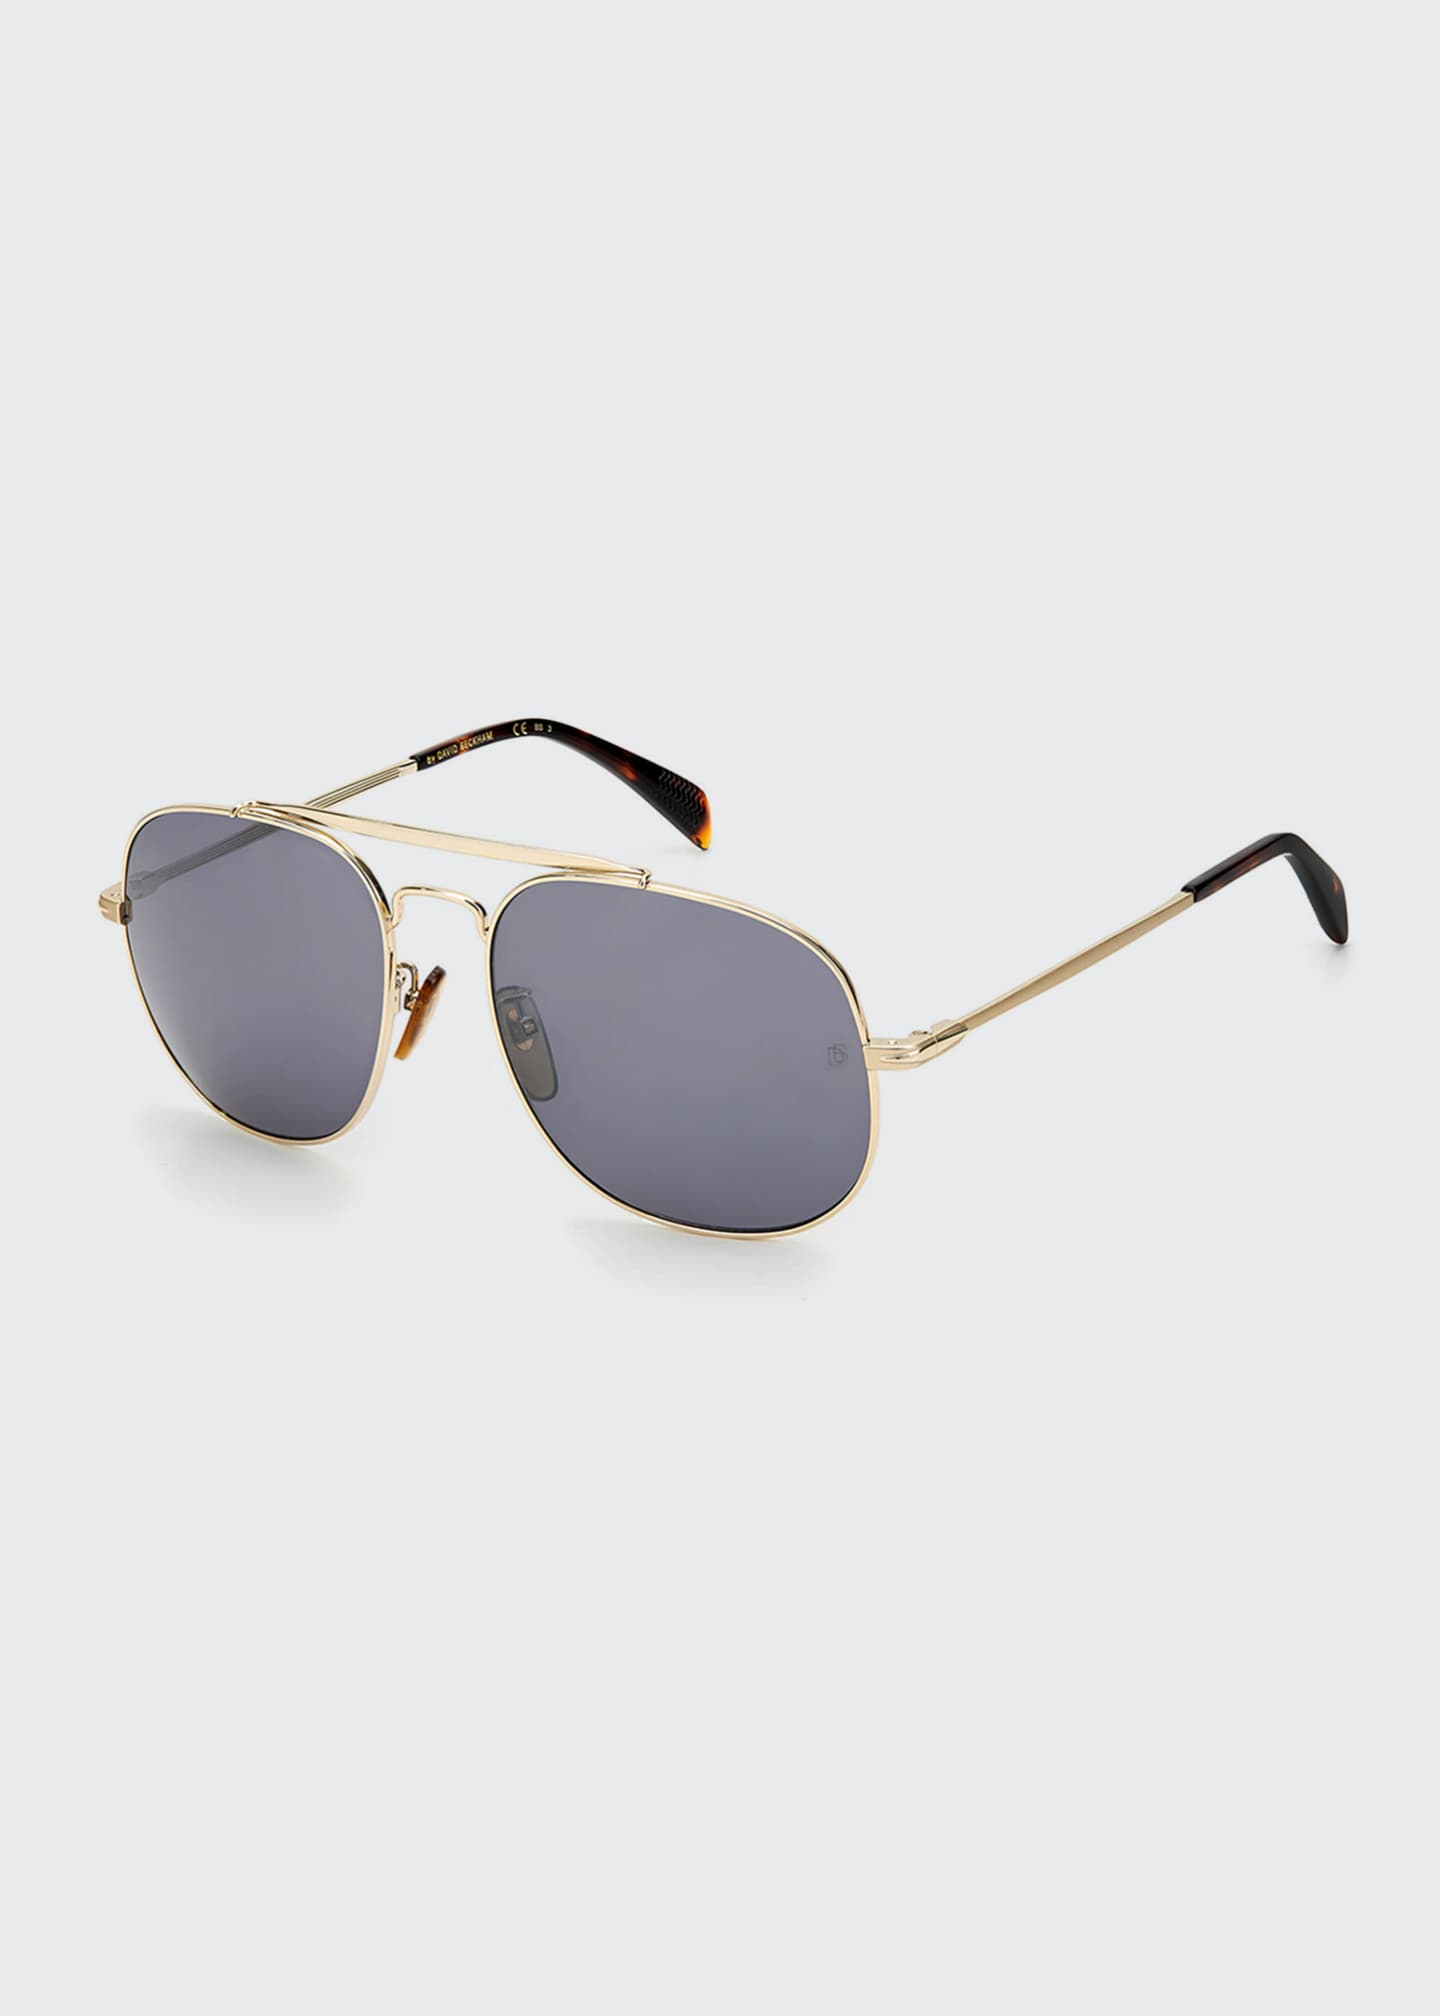 Image 1 of 1: Men's Square Metal Brow-Bar Sunglasses